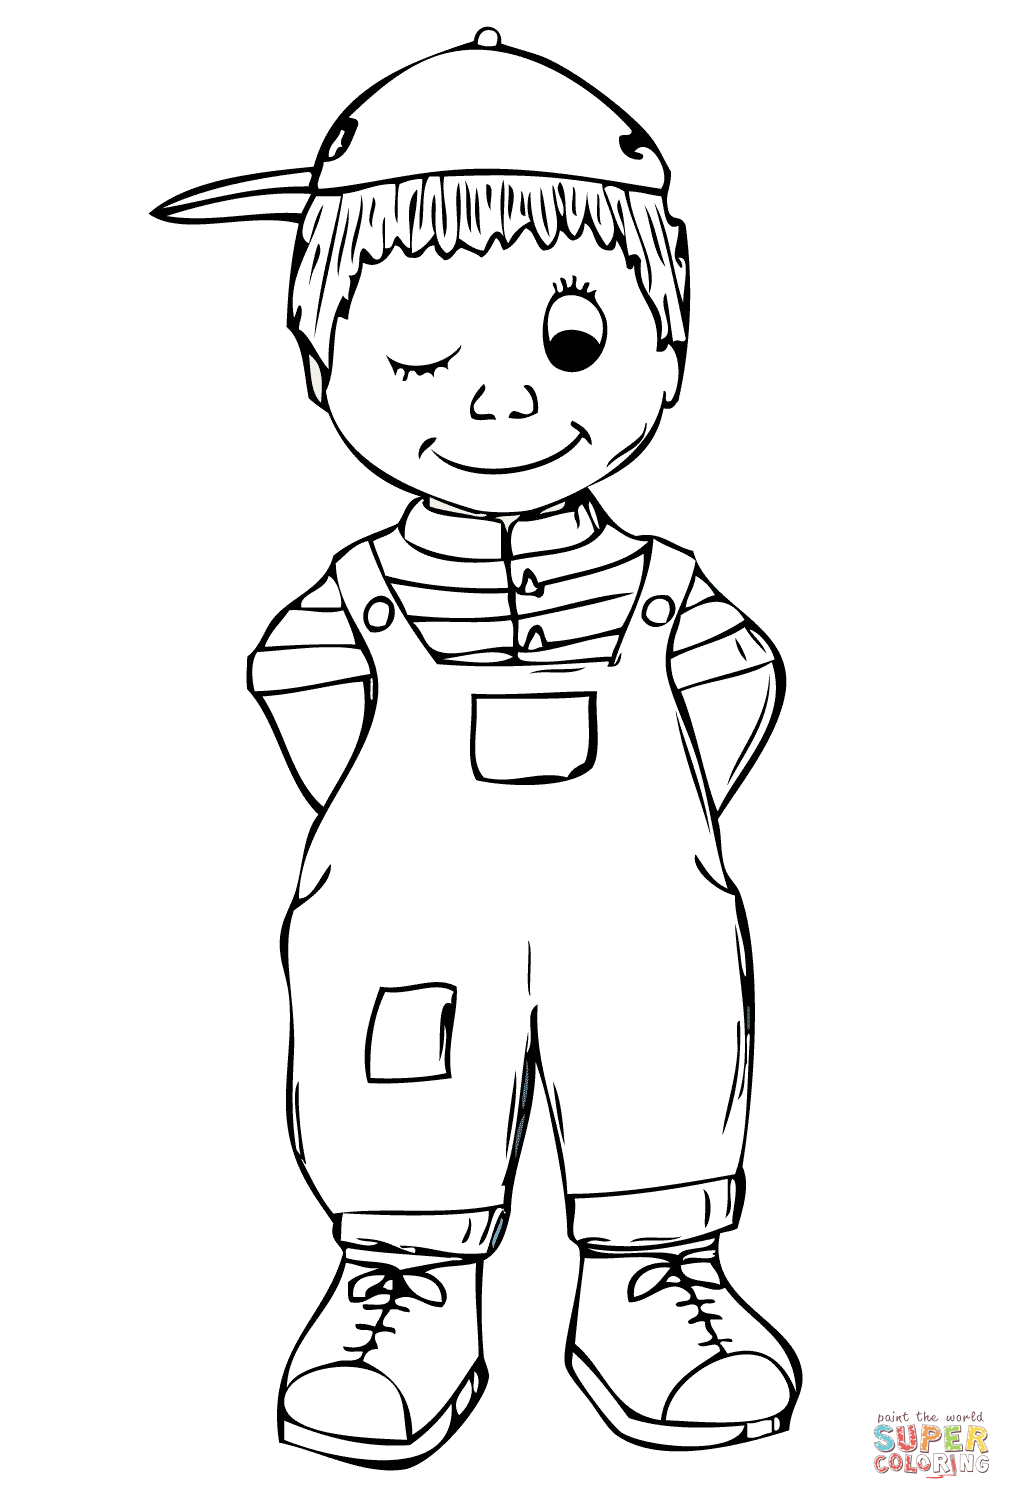 Full page coloring pages boys for Boys color pages